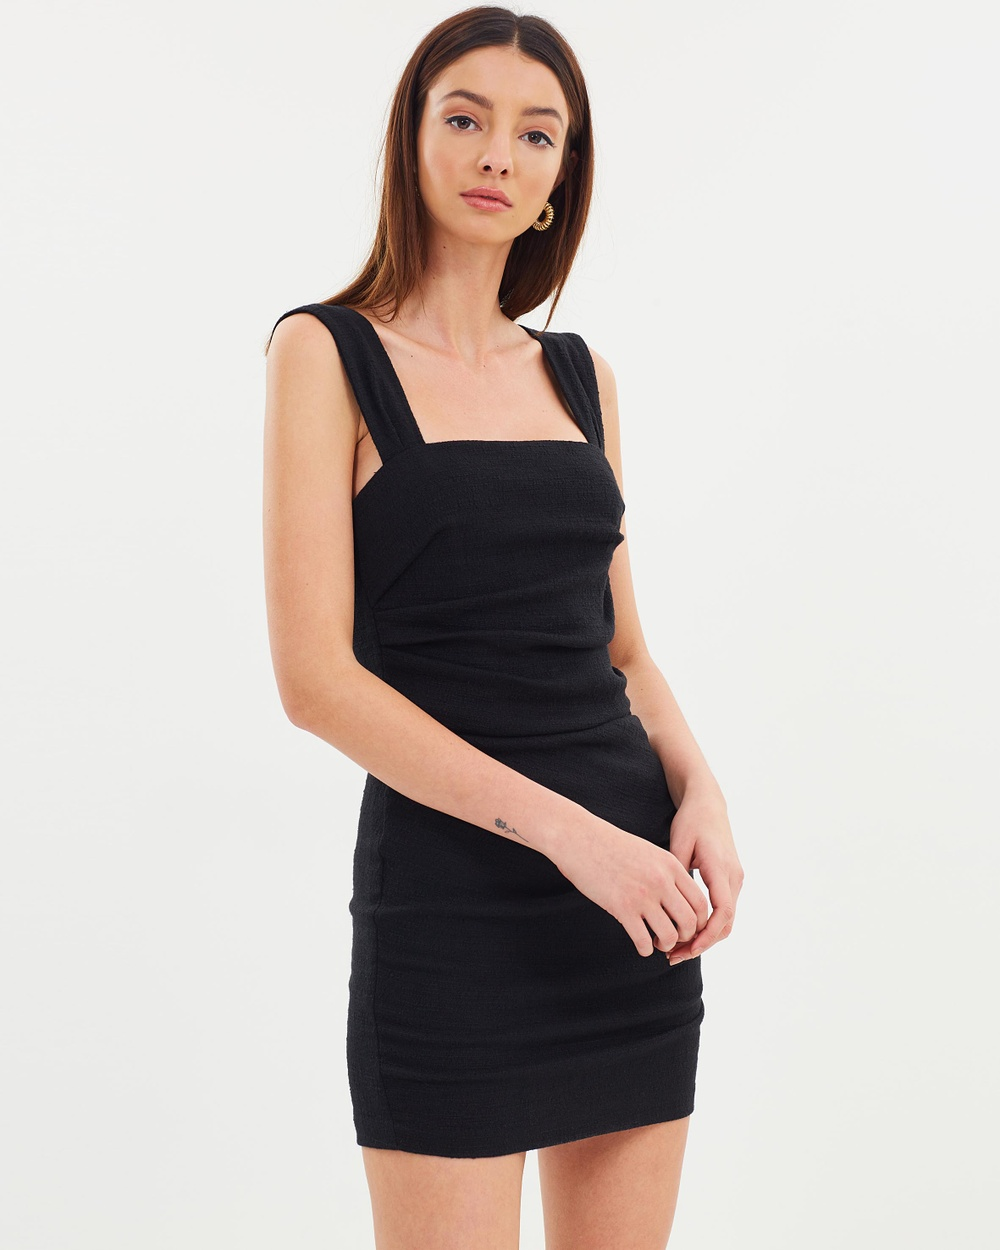 Bec & Bridge Catalina Ave Mini Dress Bodycon Dresses Black Catalina Ave Mini Dress